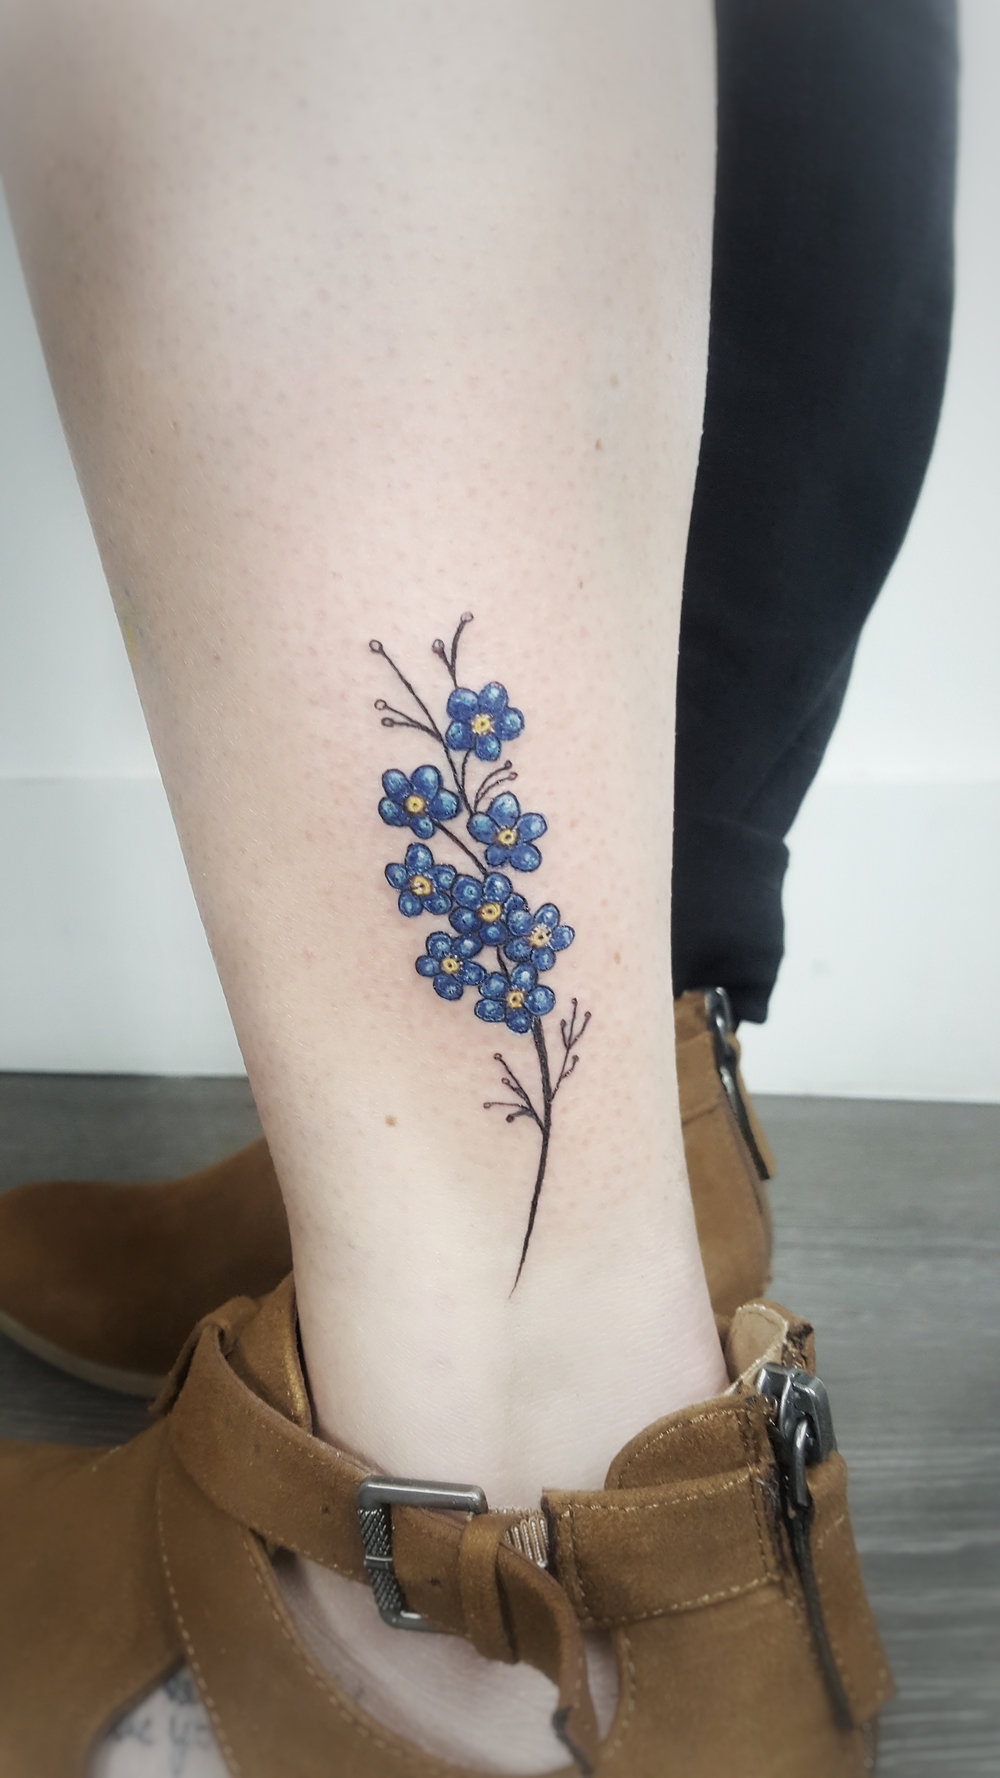 Custom Color Small Blue Flowers Tattoo by Dani at Certified Tattoo Studios Denver Co.jpg